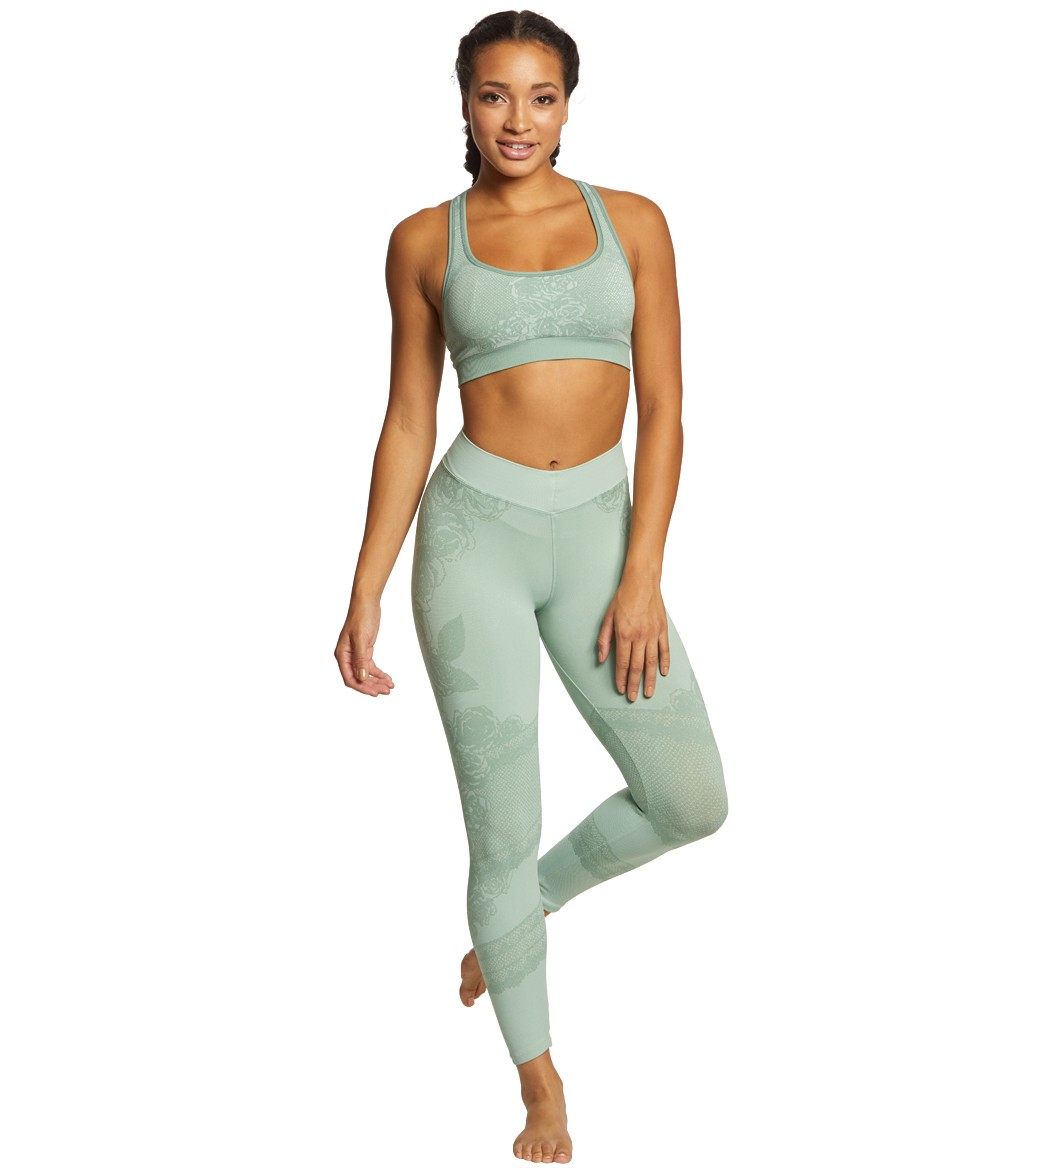 d5a3f91f27ce01 NUX Eden Seamless 7/8 Yoga Leggings at YogaOutlet.com - Free Shipping